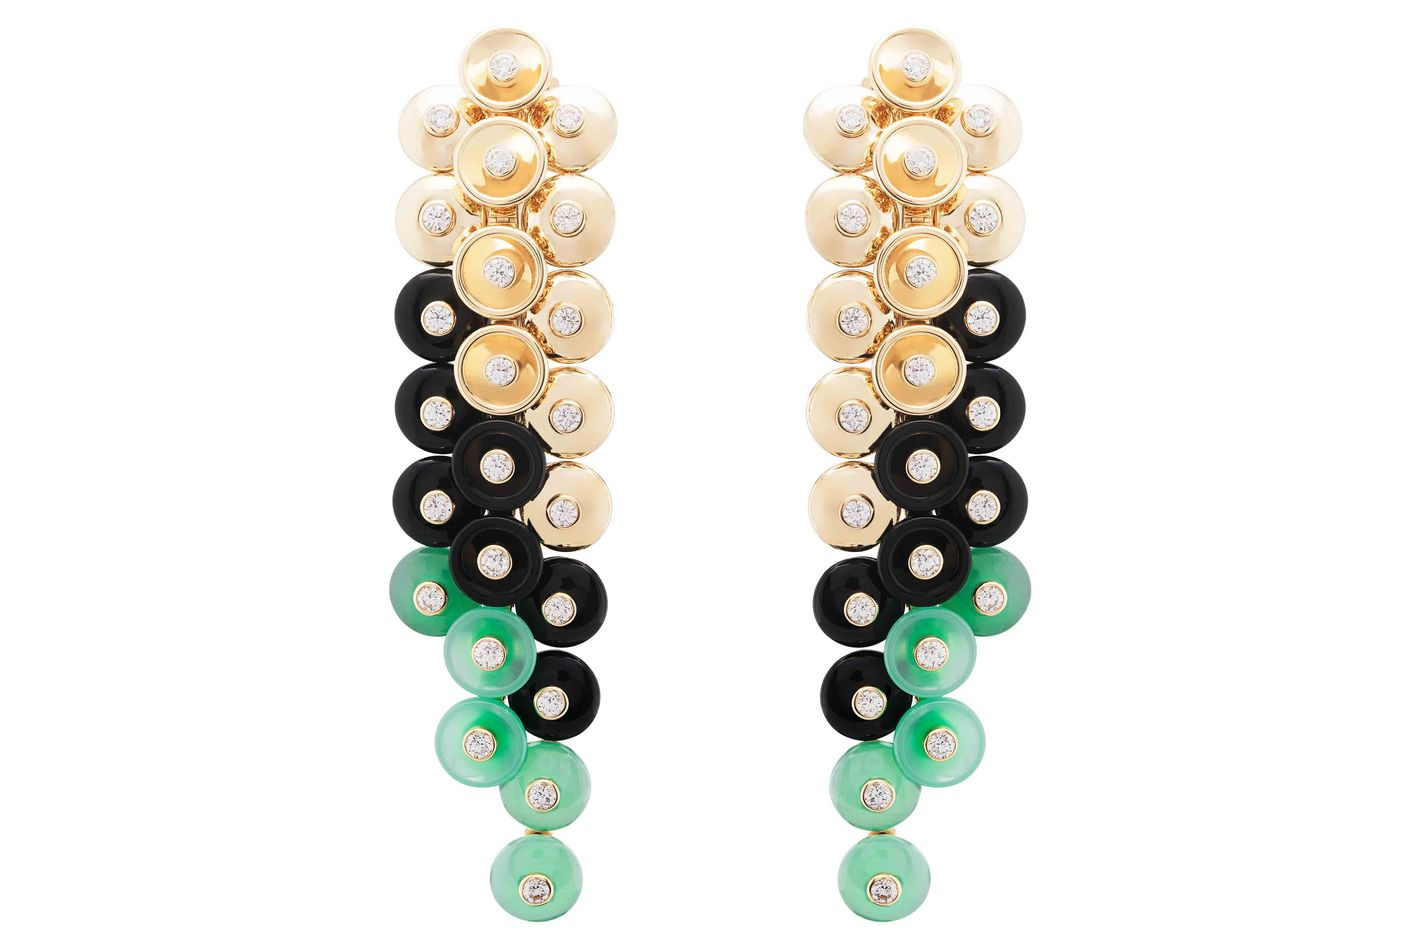 Van Cleef & Arpels Bouton D'or Earrings